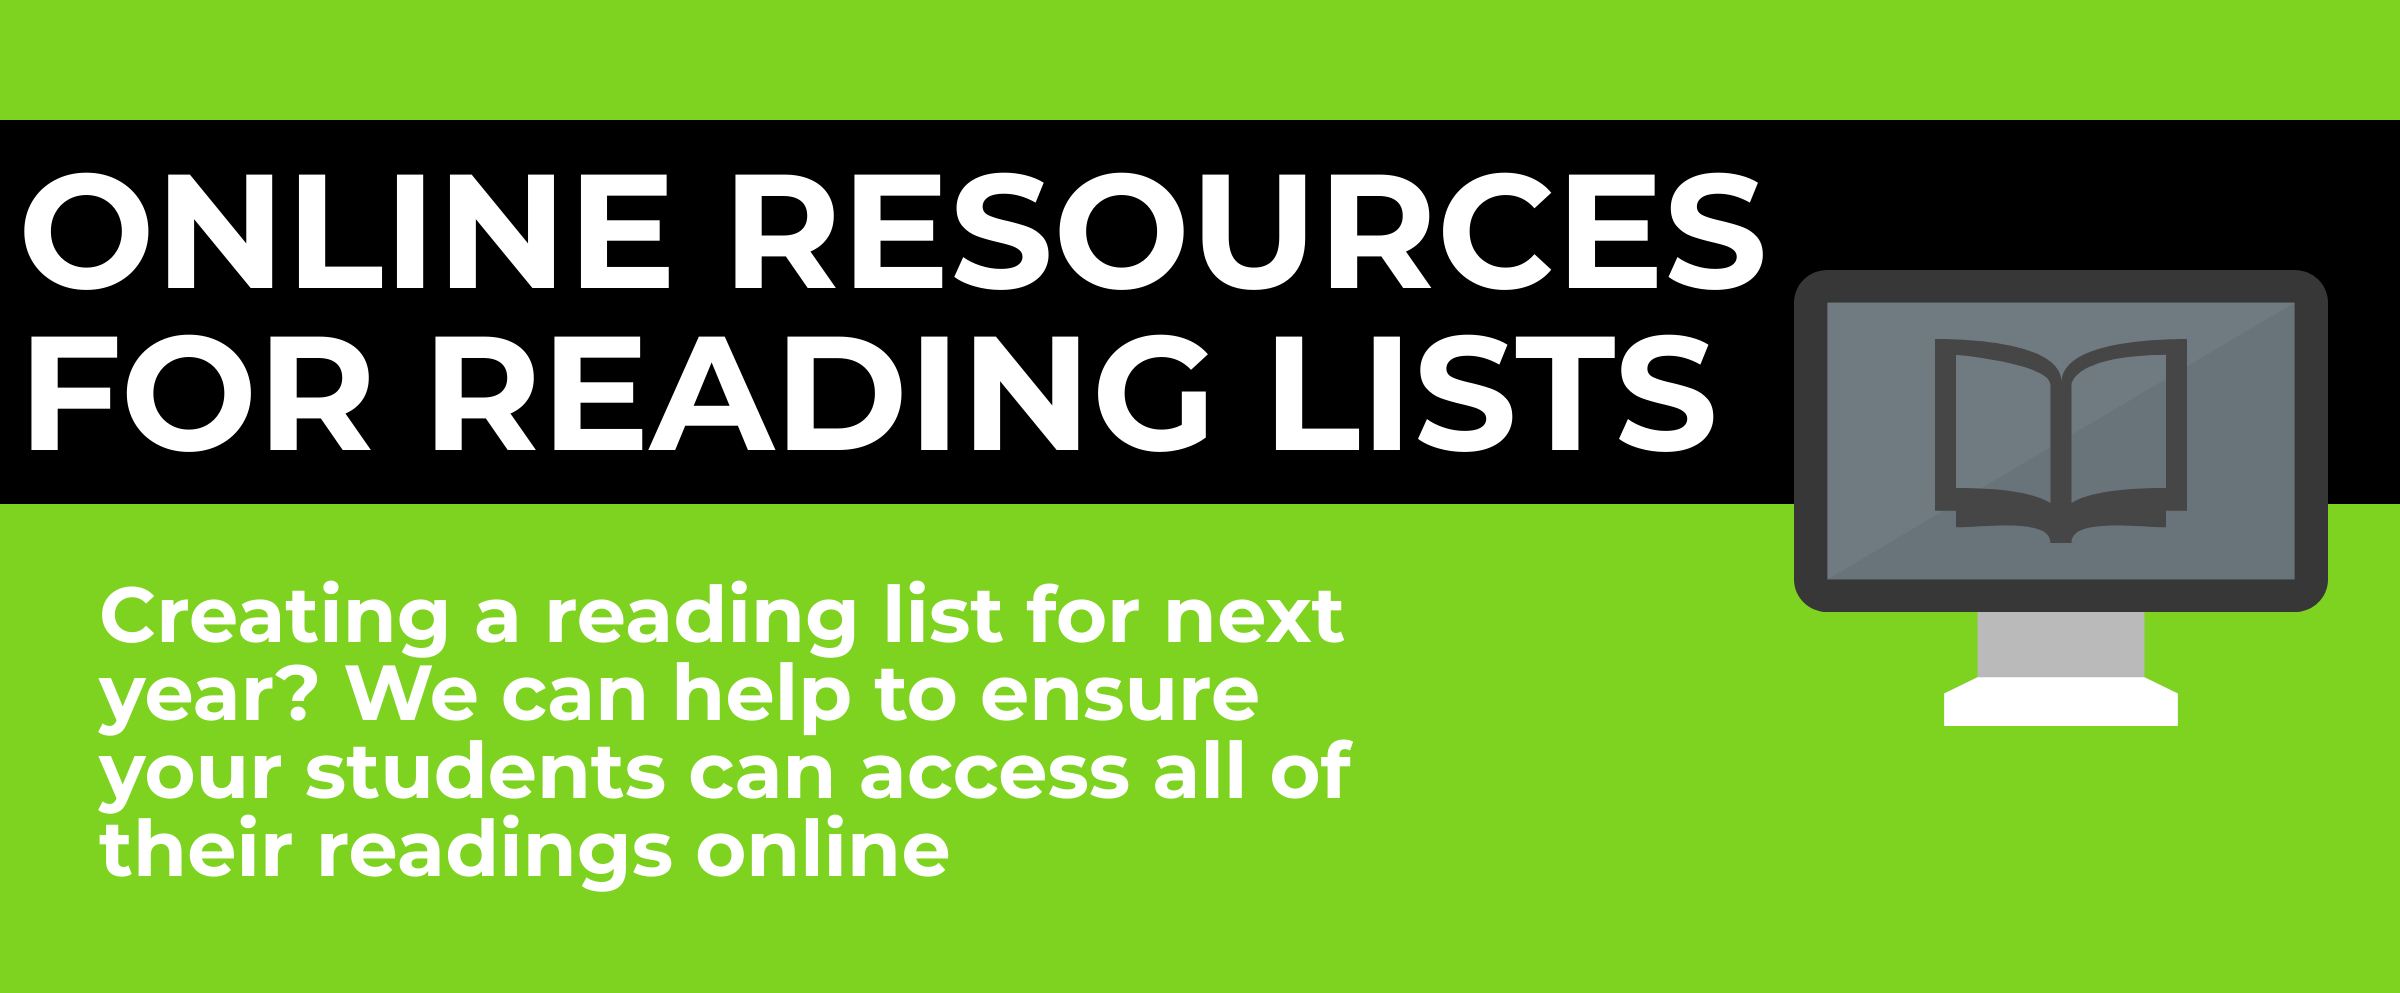 online resources for reading lists